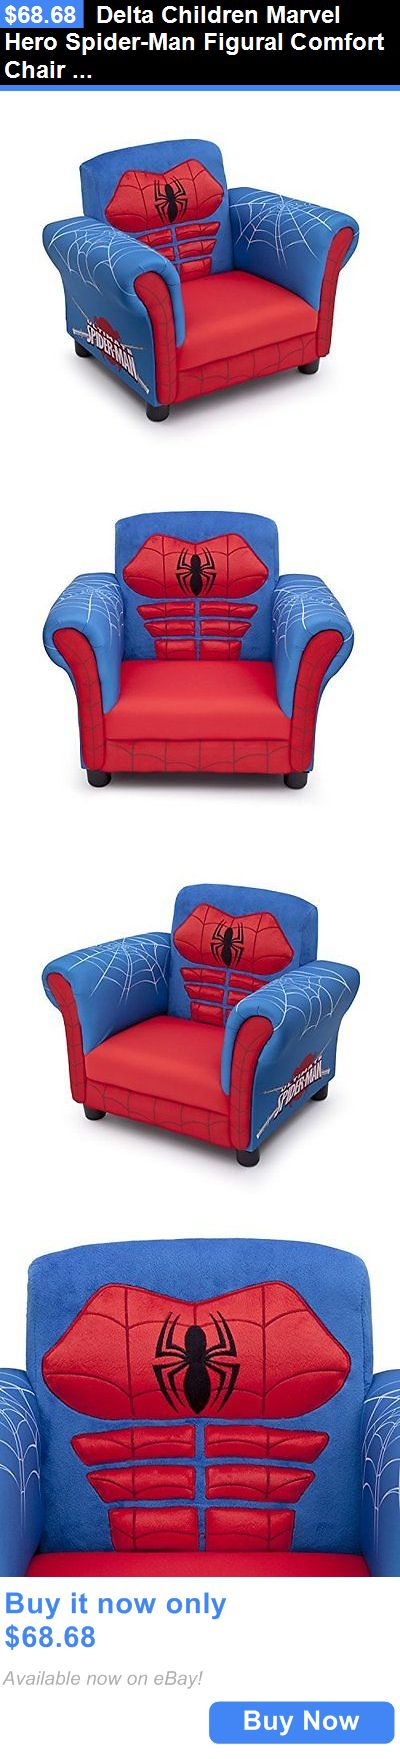 Kids Furniture: Delta Children Marvel Hero Spider-Man Figural Comfort Chair Bedroom Furniture BUY IT NOW ONLY: $68.68